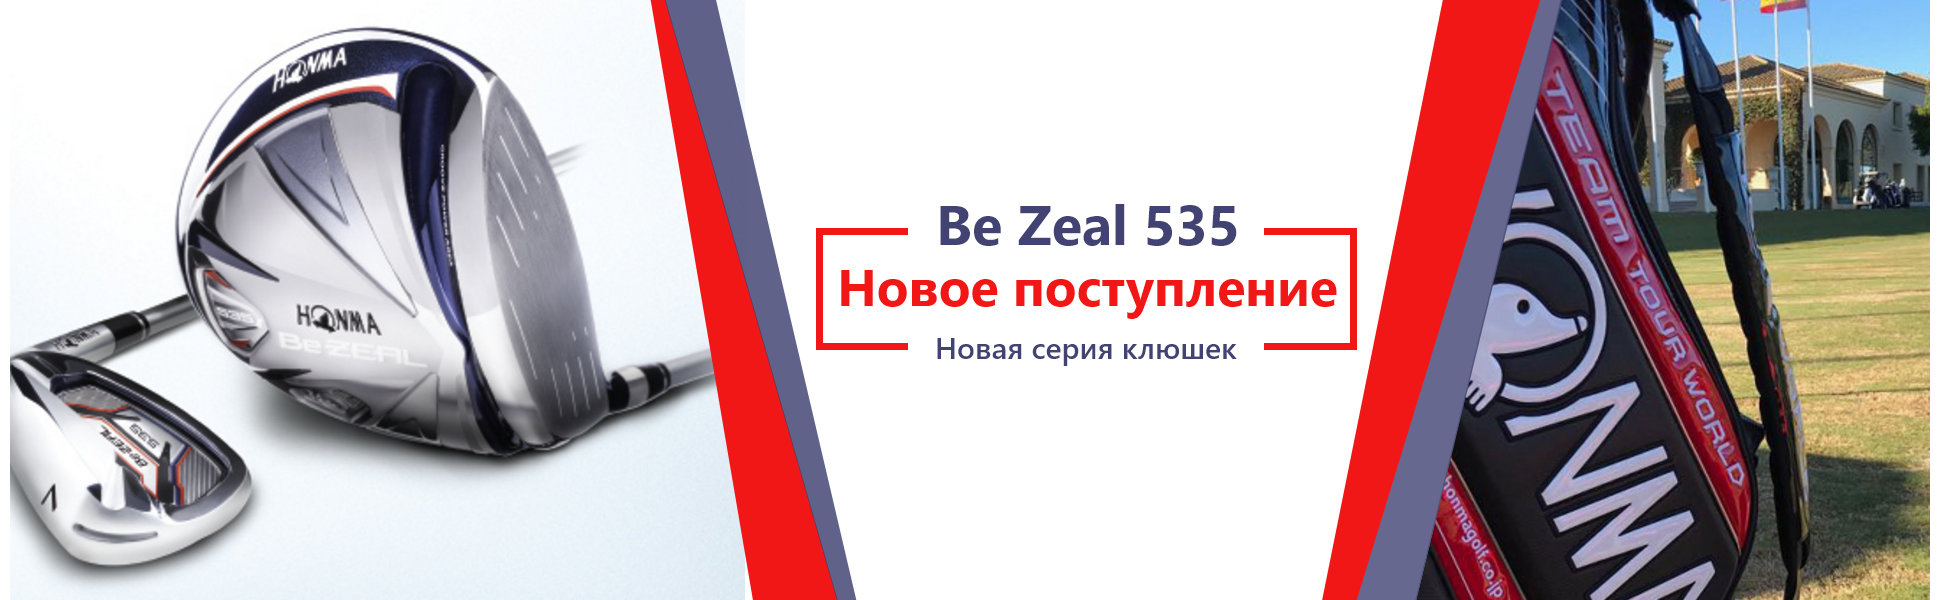 Be Zeal 535